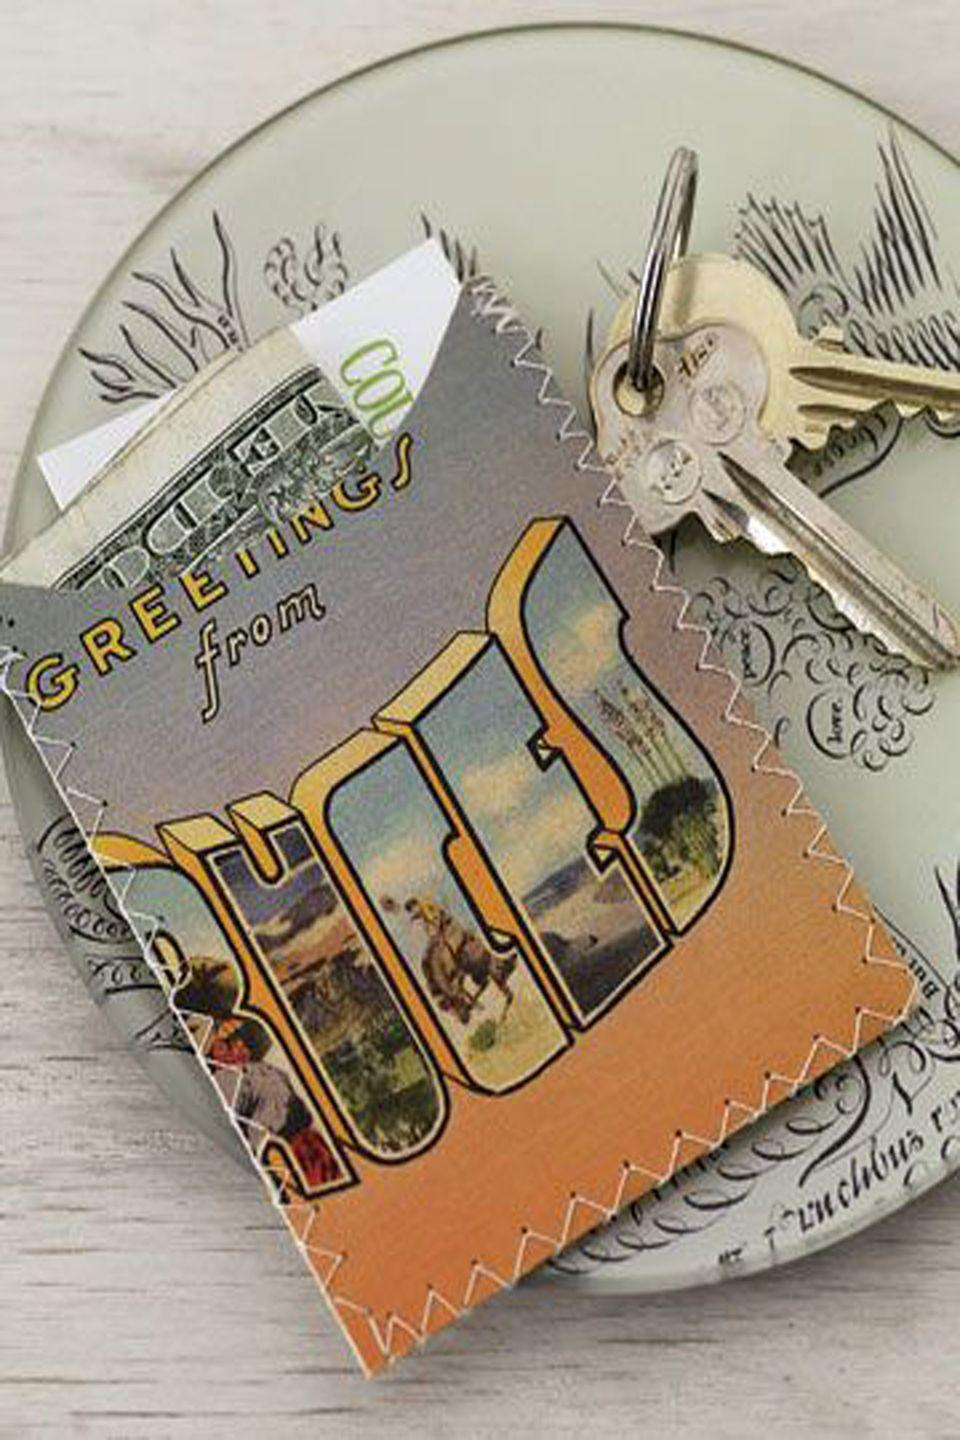 <p>Stitch up vintage postcards to make a slim wallet or business card holder.</p><p>Here's how: Fold the postcard in half with the decorative side face up, and cut a half-moon from the top front of the postcard. Open the card flat and cover with a sheet of clear, lightweight vinyl; stitch all around the postcard, 1/4-inch from its edge. Trim vinyl to fit and refold the postcard in half. Sew the wallet around three edges, leaving the top open.</p>